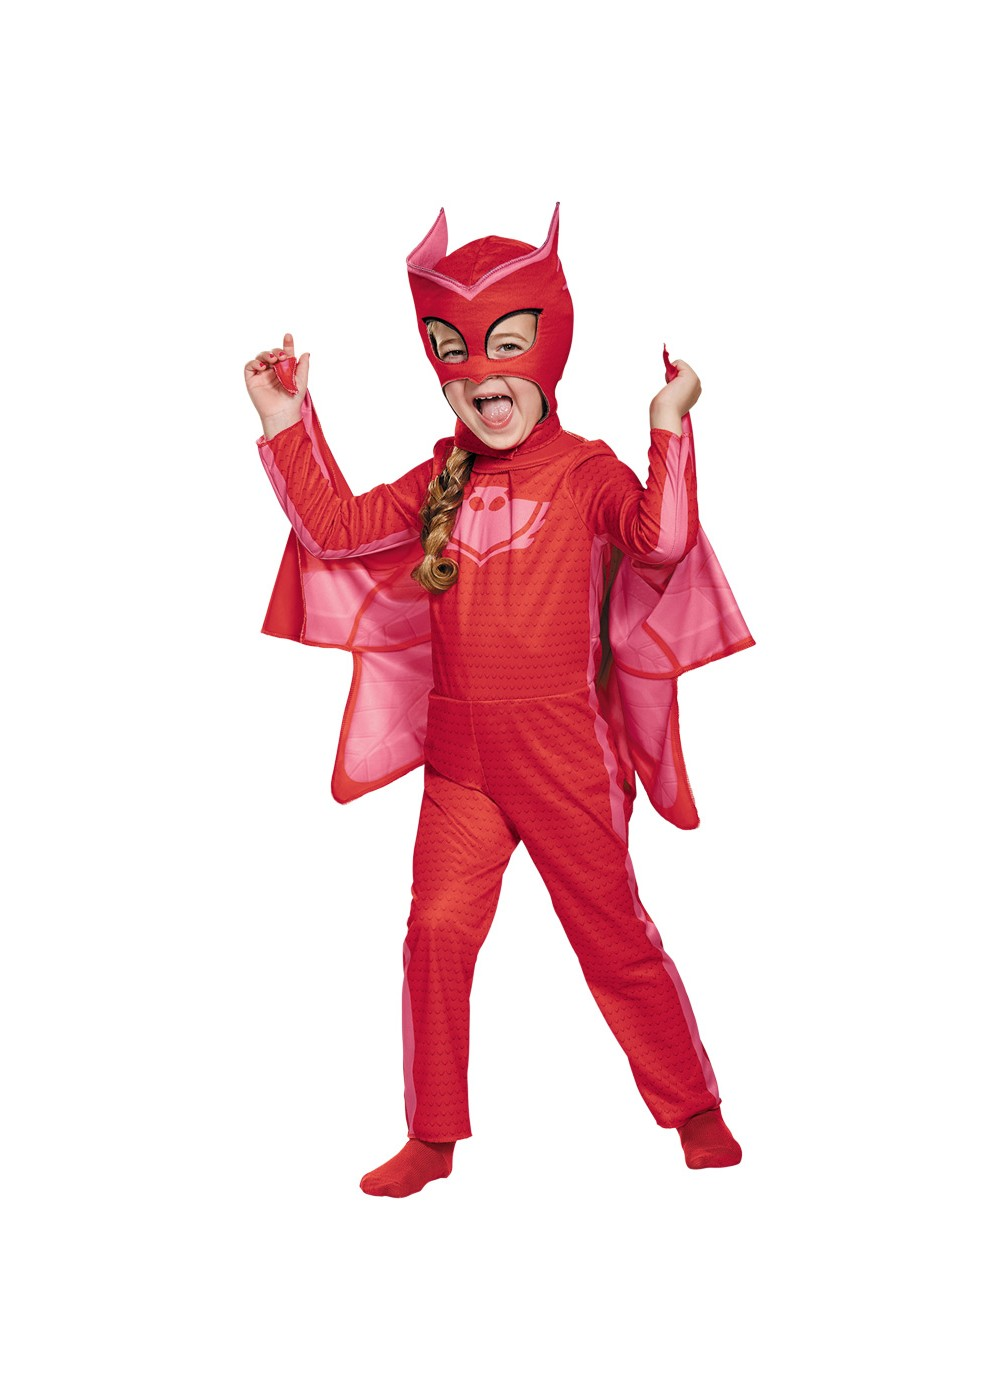 Kids Pj Masks Owlette Girls Costume